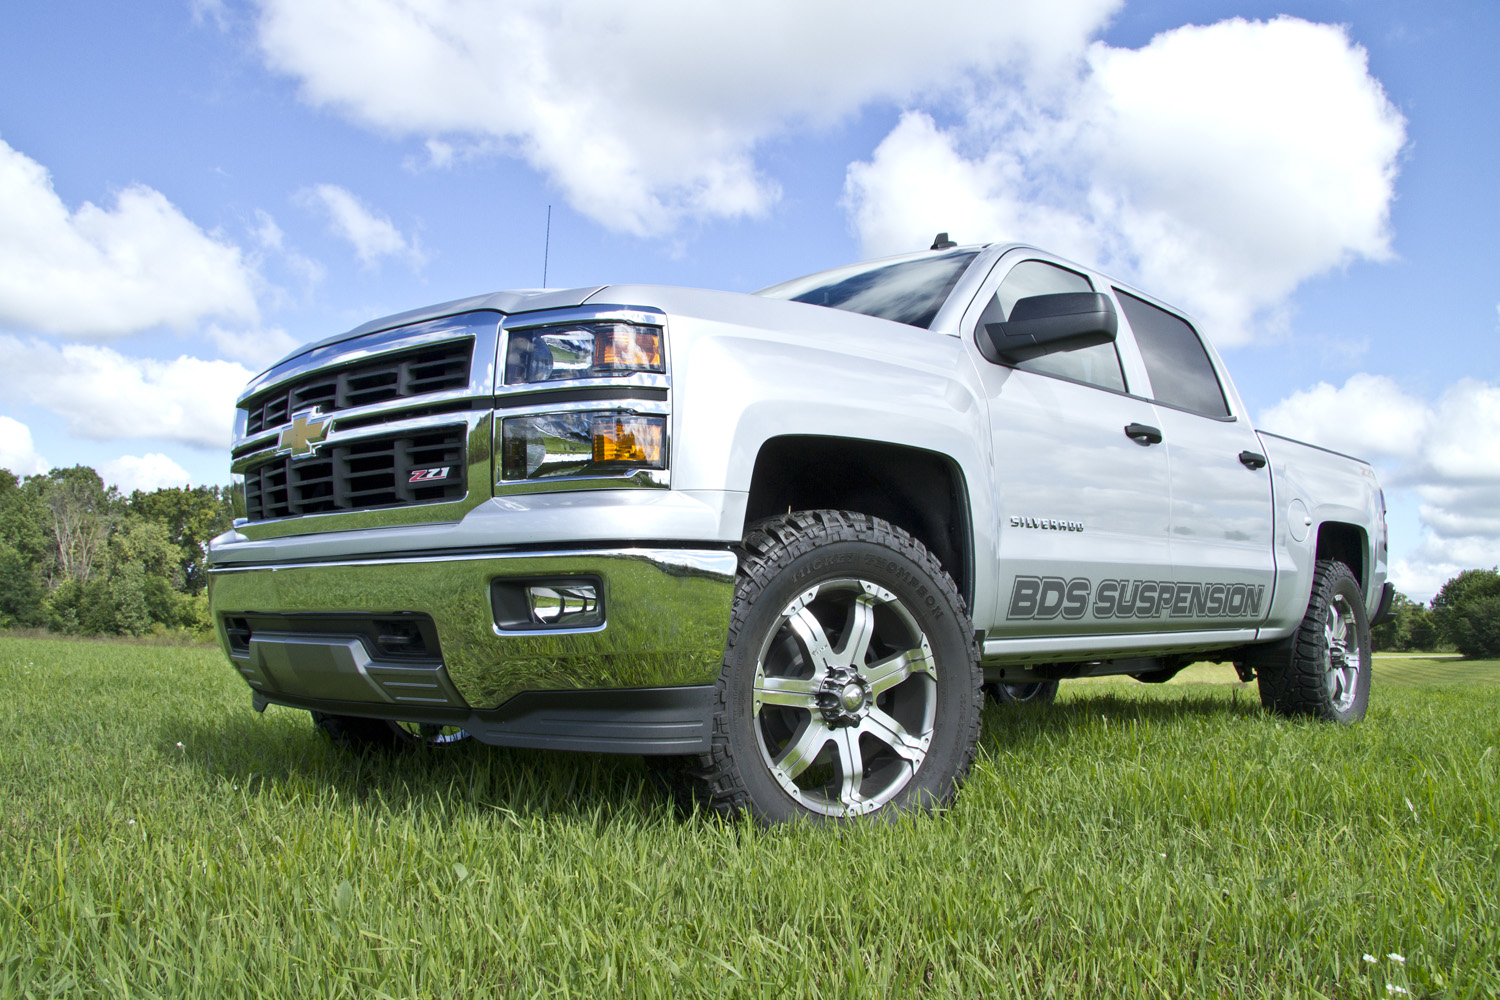 All Chevy 98 chevy lift kit : Press Release #145: 2014 Chevy/GMC 1500 Leveling Kit | BDS